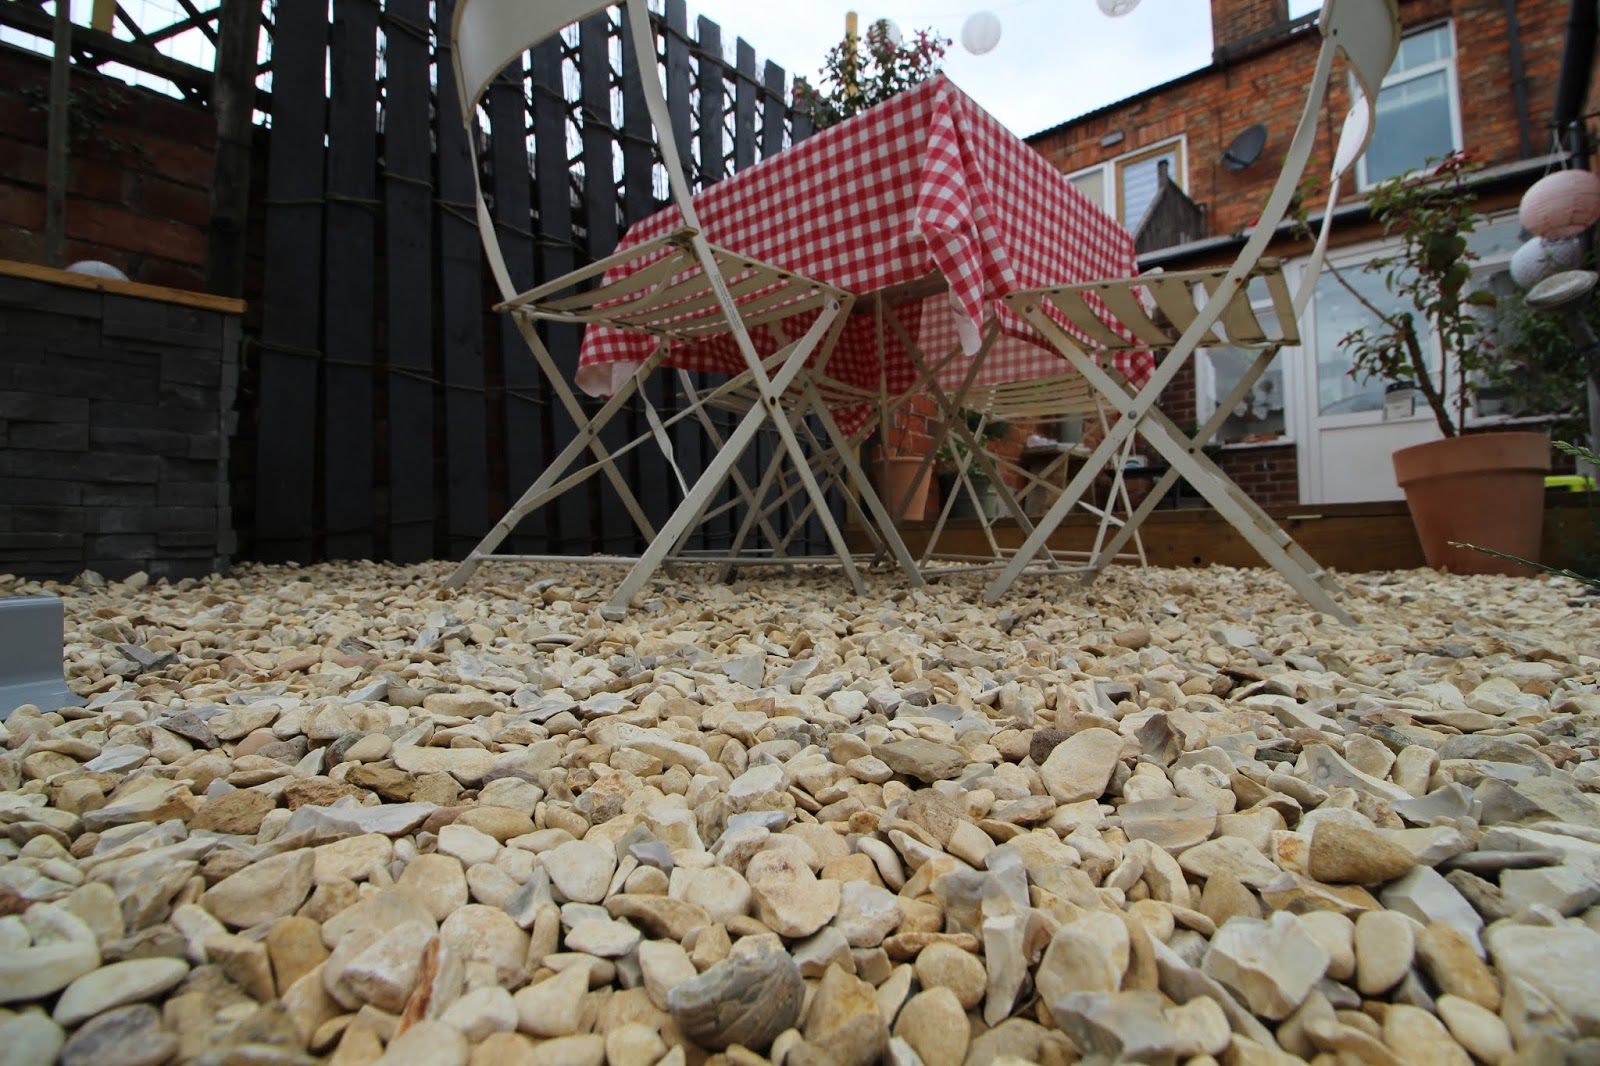 Yorkshire Cream Gravel in Garden